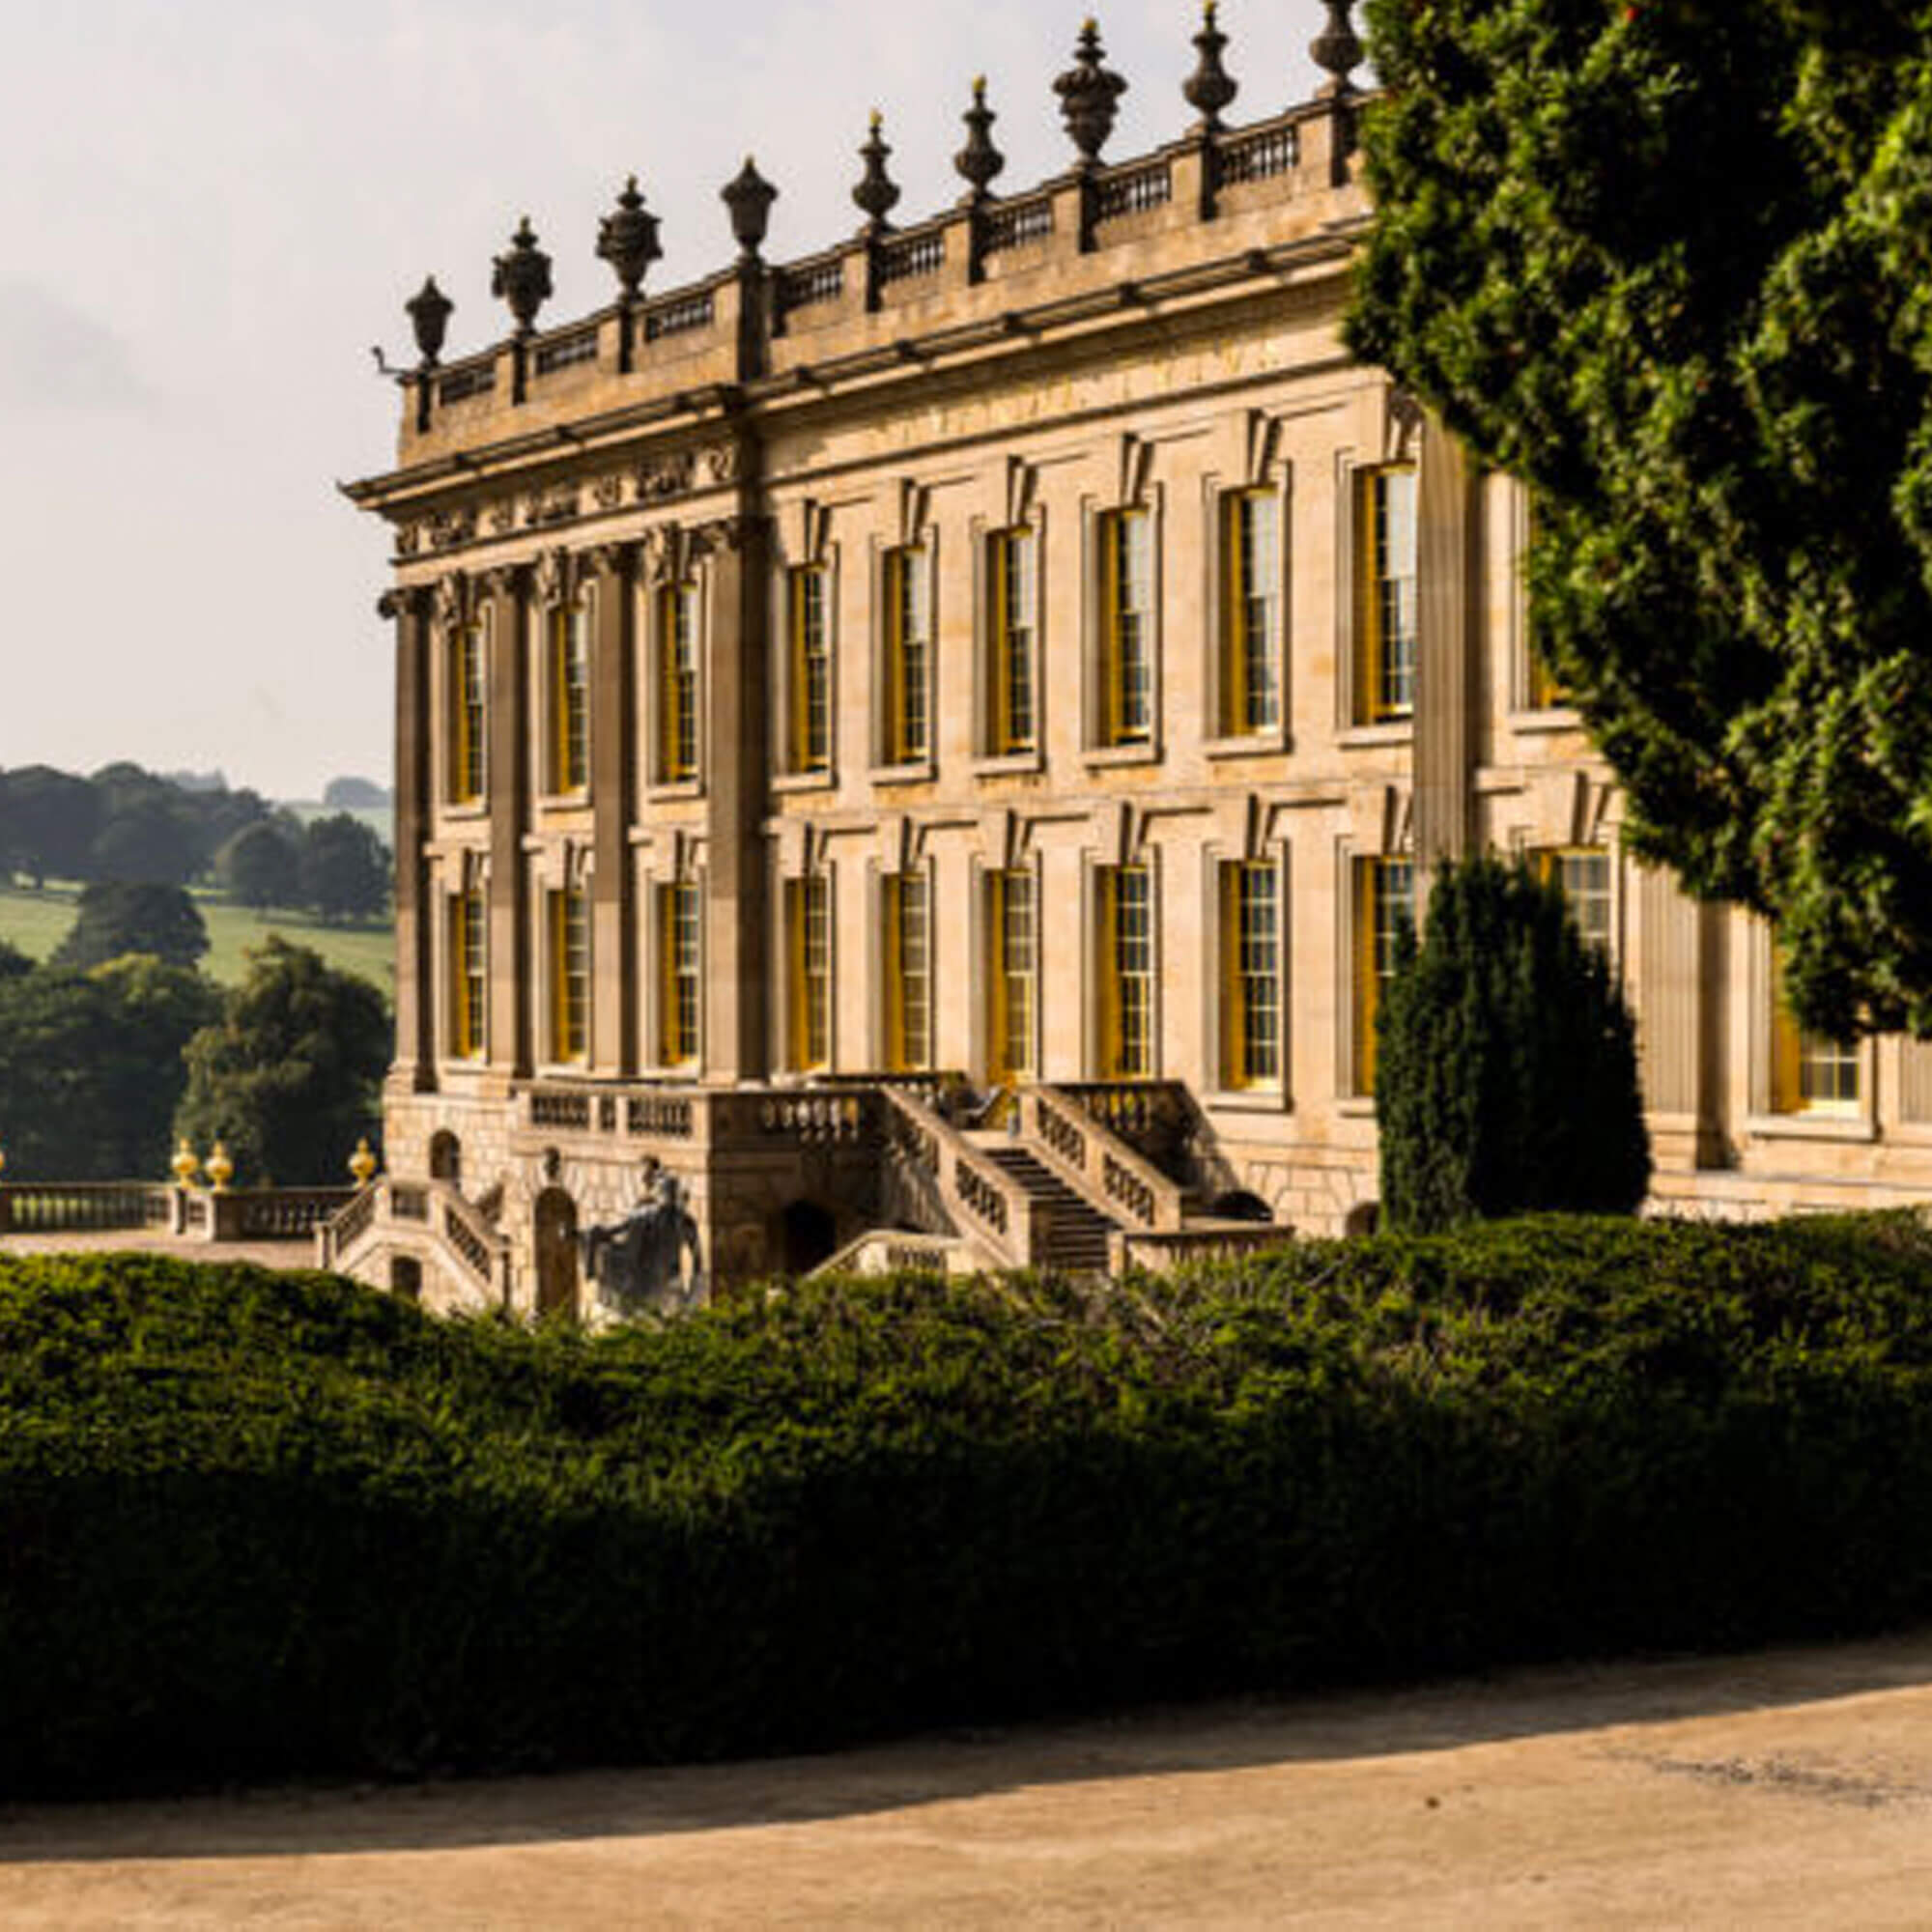 A view of Chatsworth House in Derbyshire